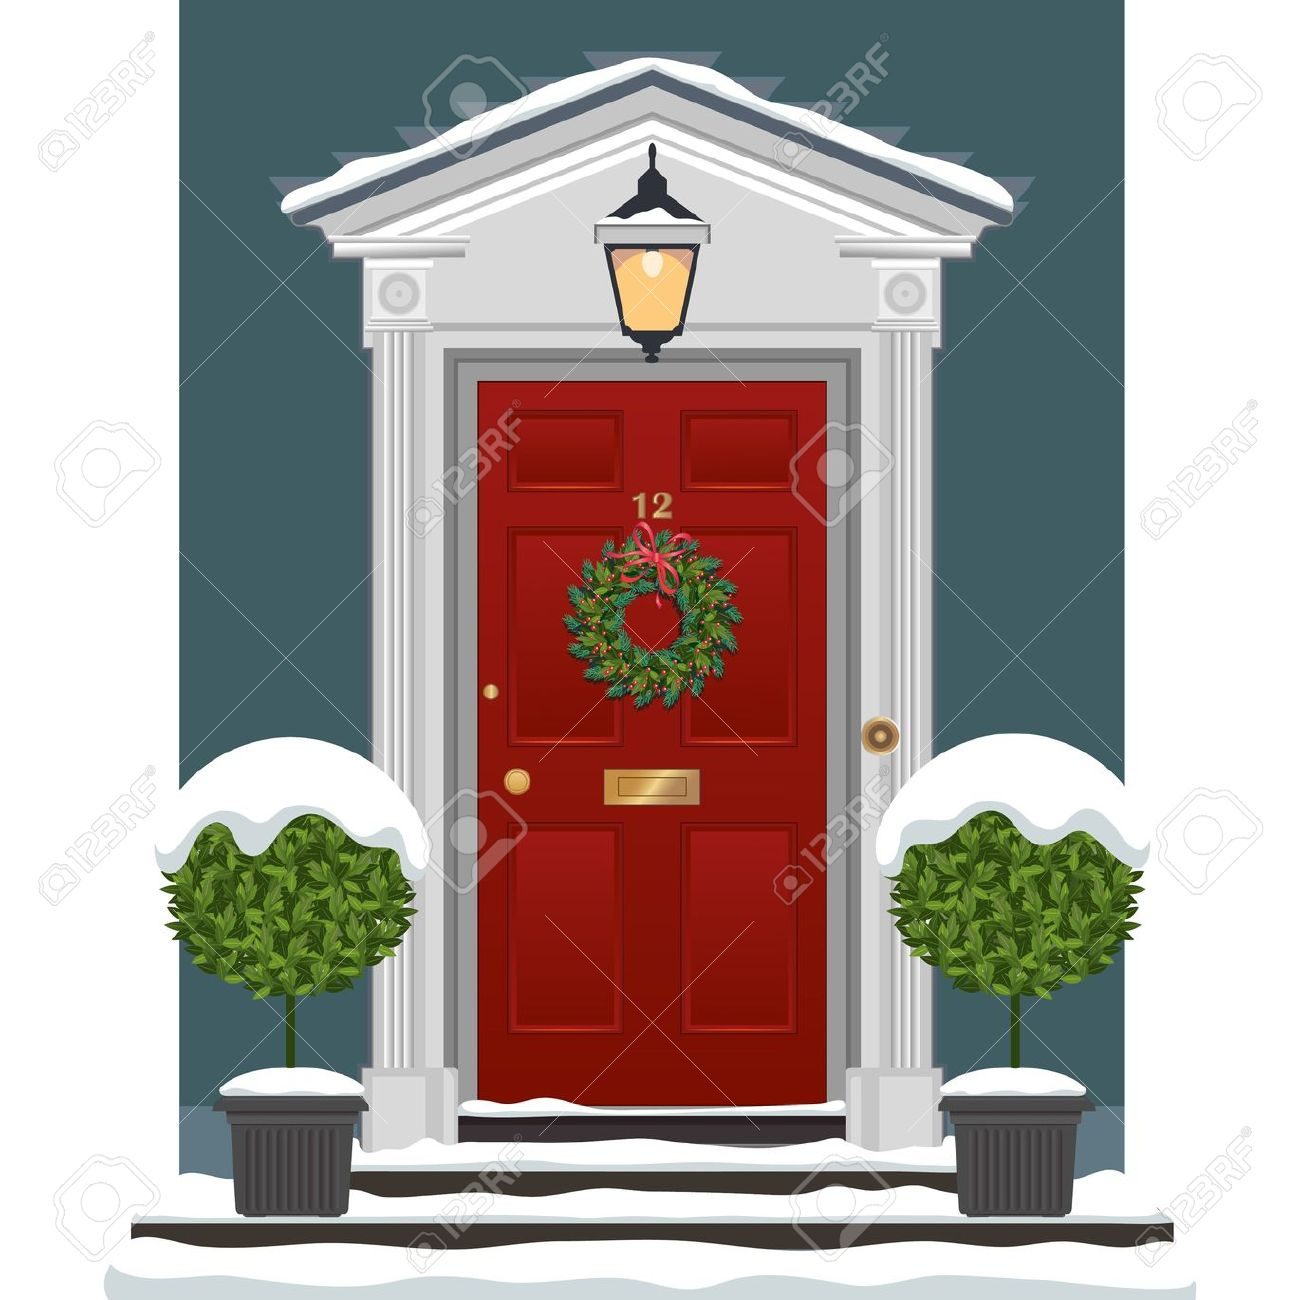 Red painted front door with .